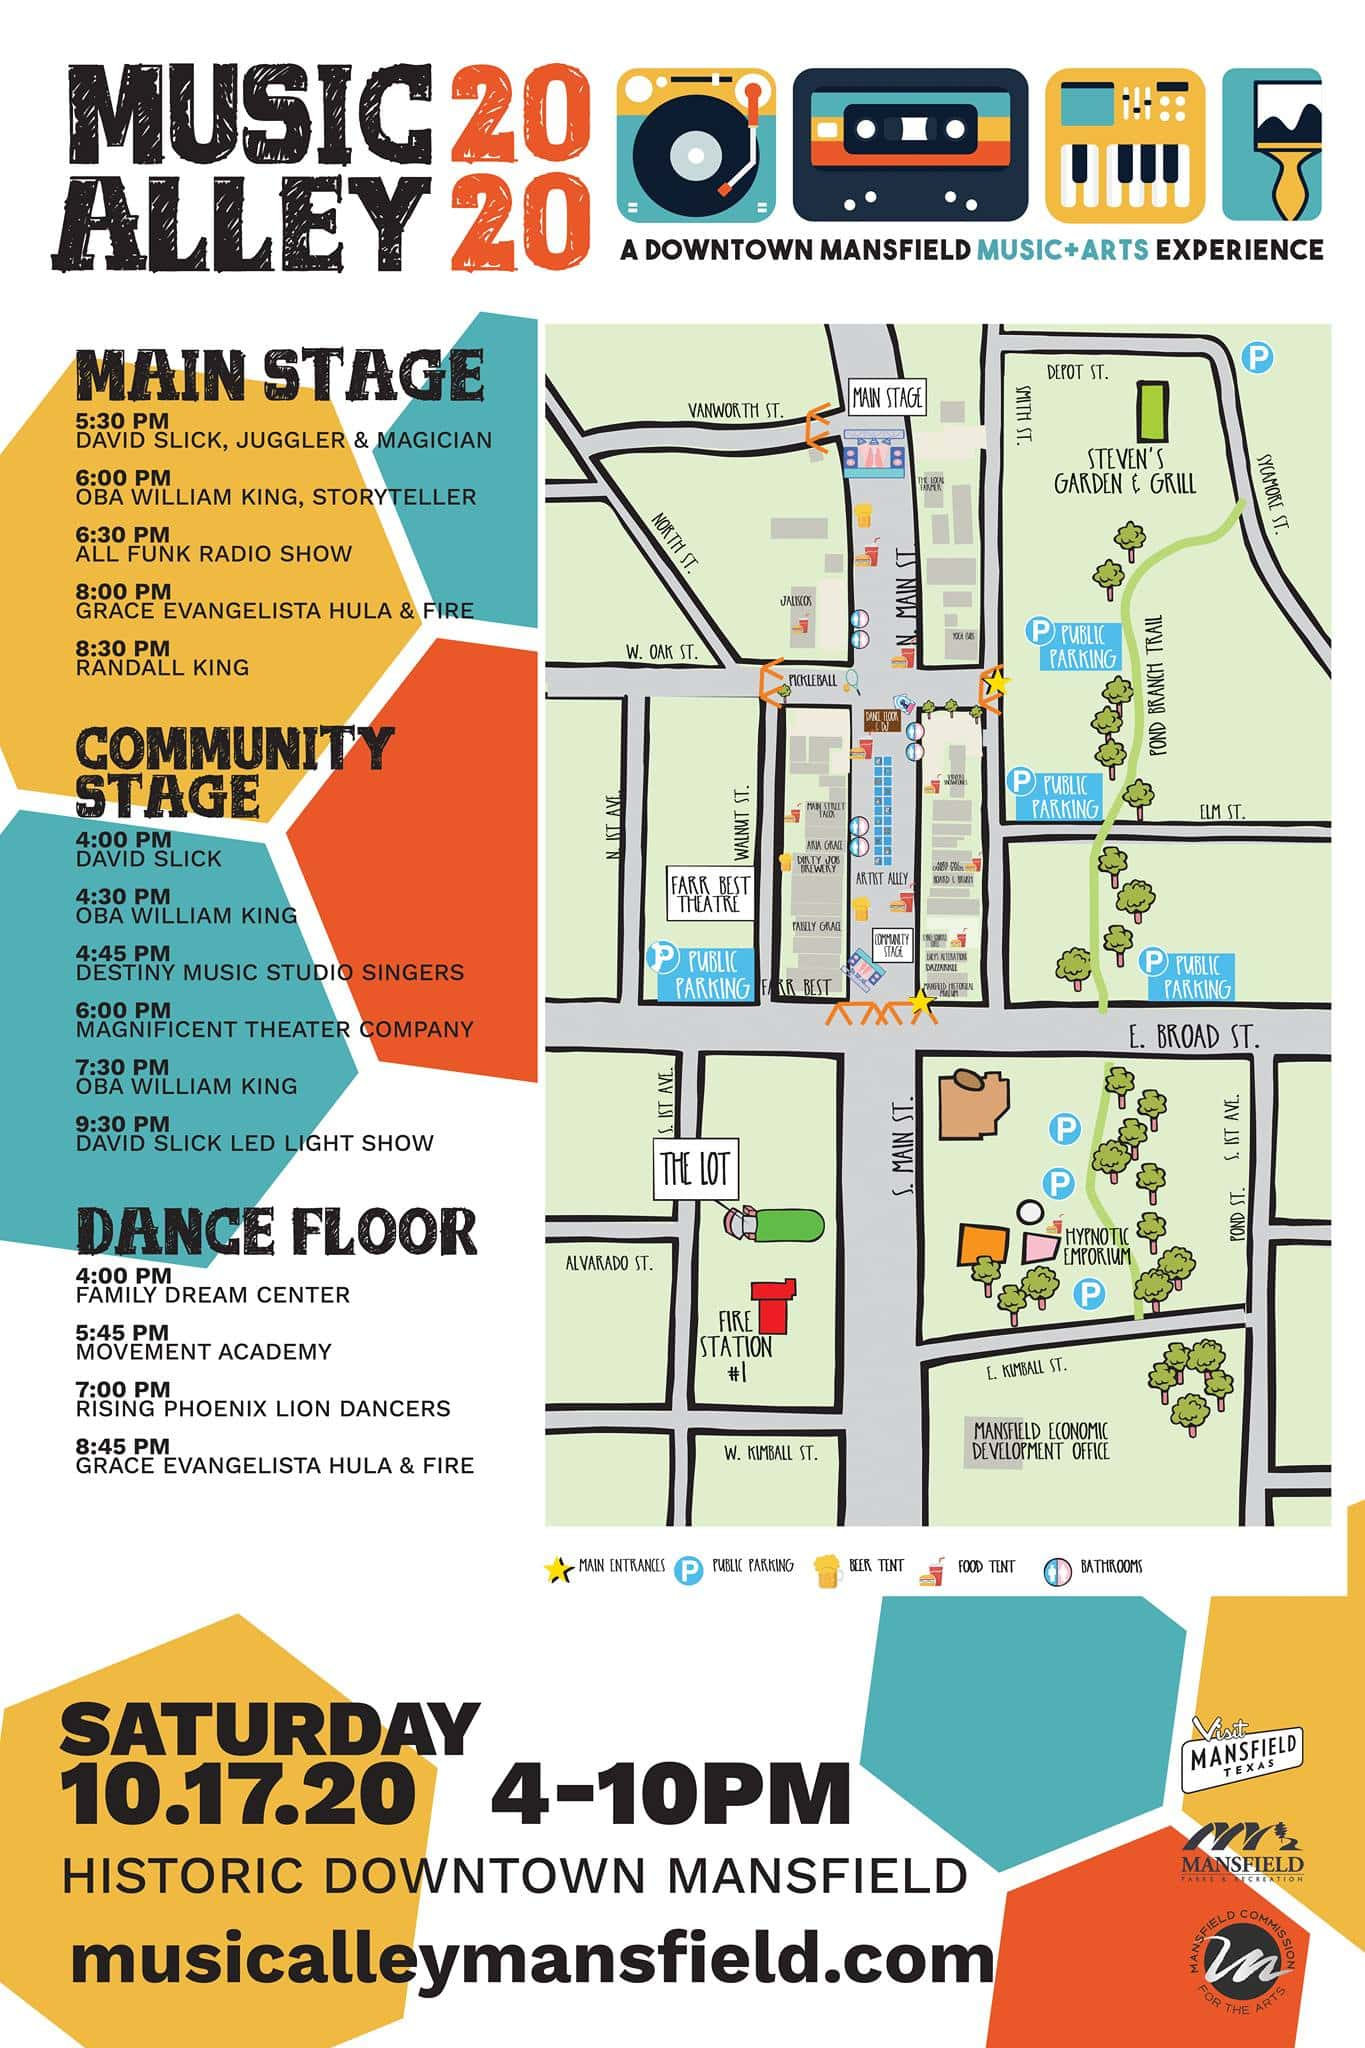 Music Alley 2020 map